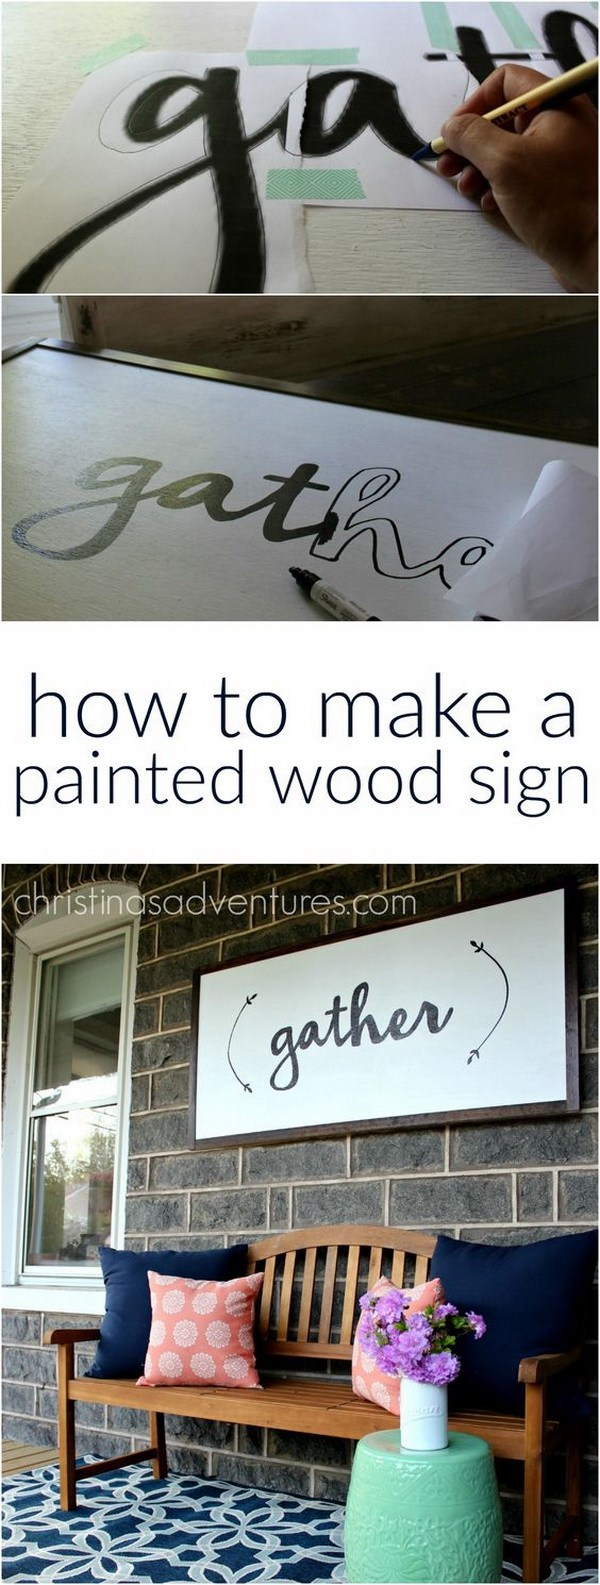 DIY Large Painted Wooden Sign: This painted wood sign is very easy to make. No special tools required and makes a statement to your home decor.